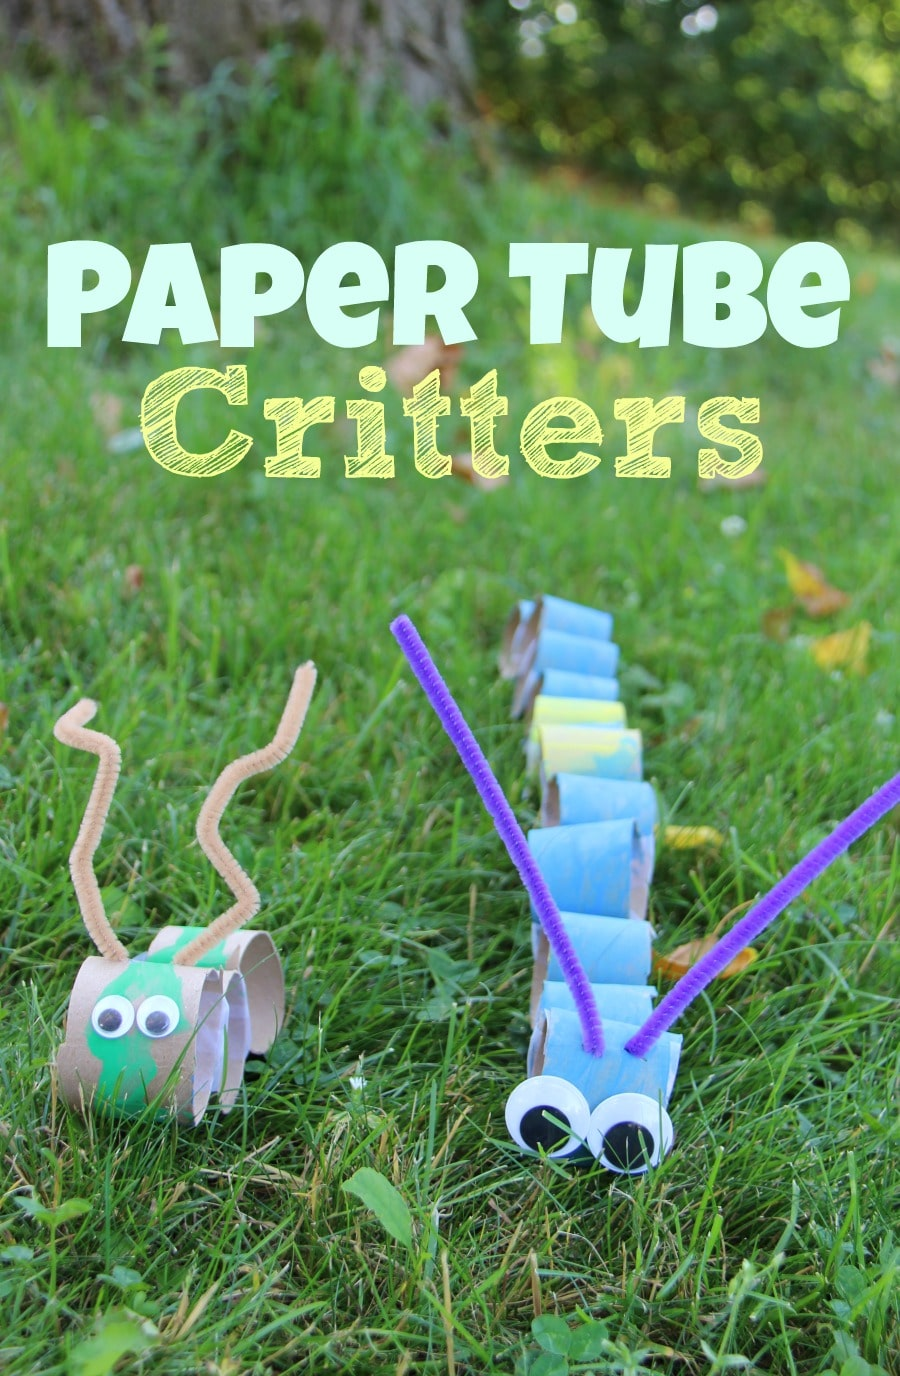 Paper Tube Critters